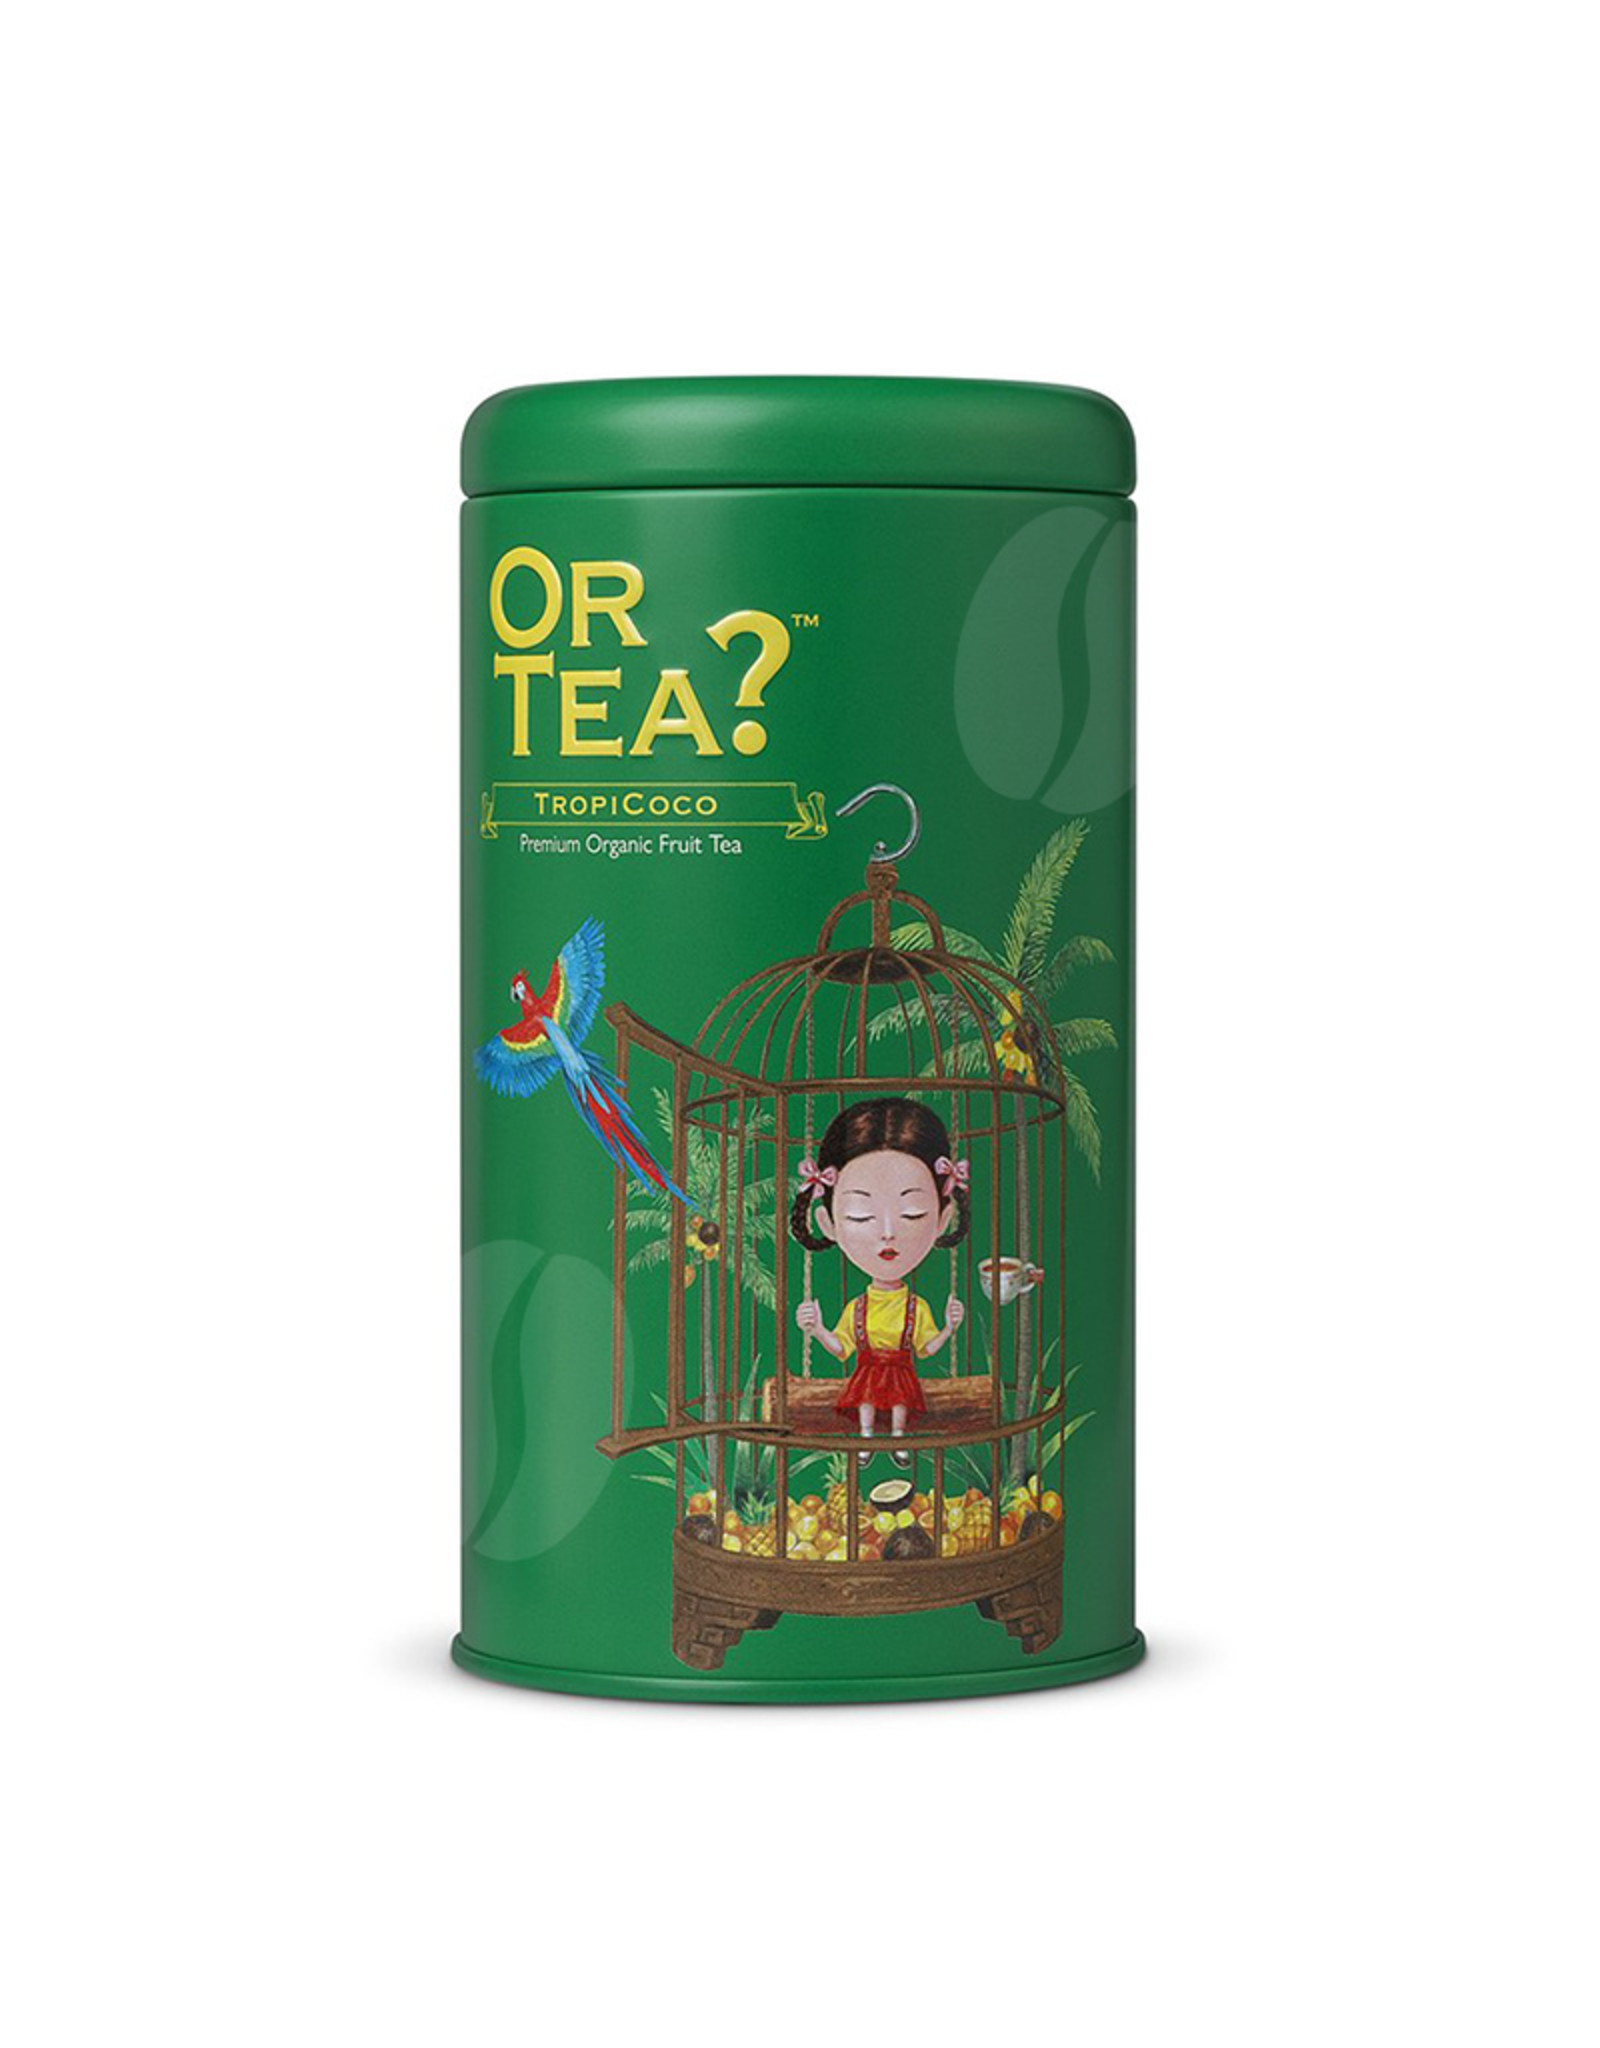 Or Tea? Organic TropiCoco - Tin Canister